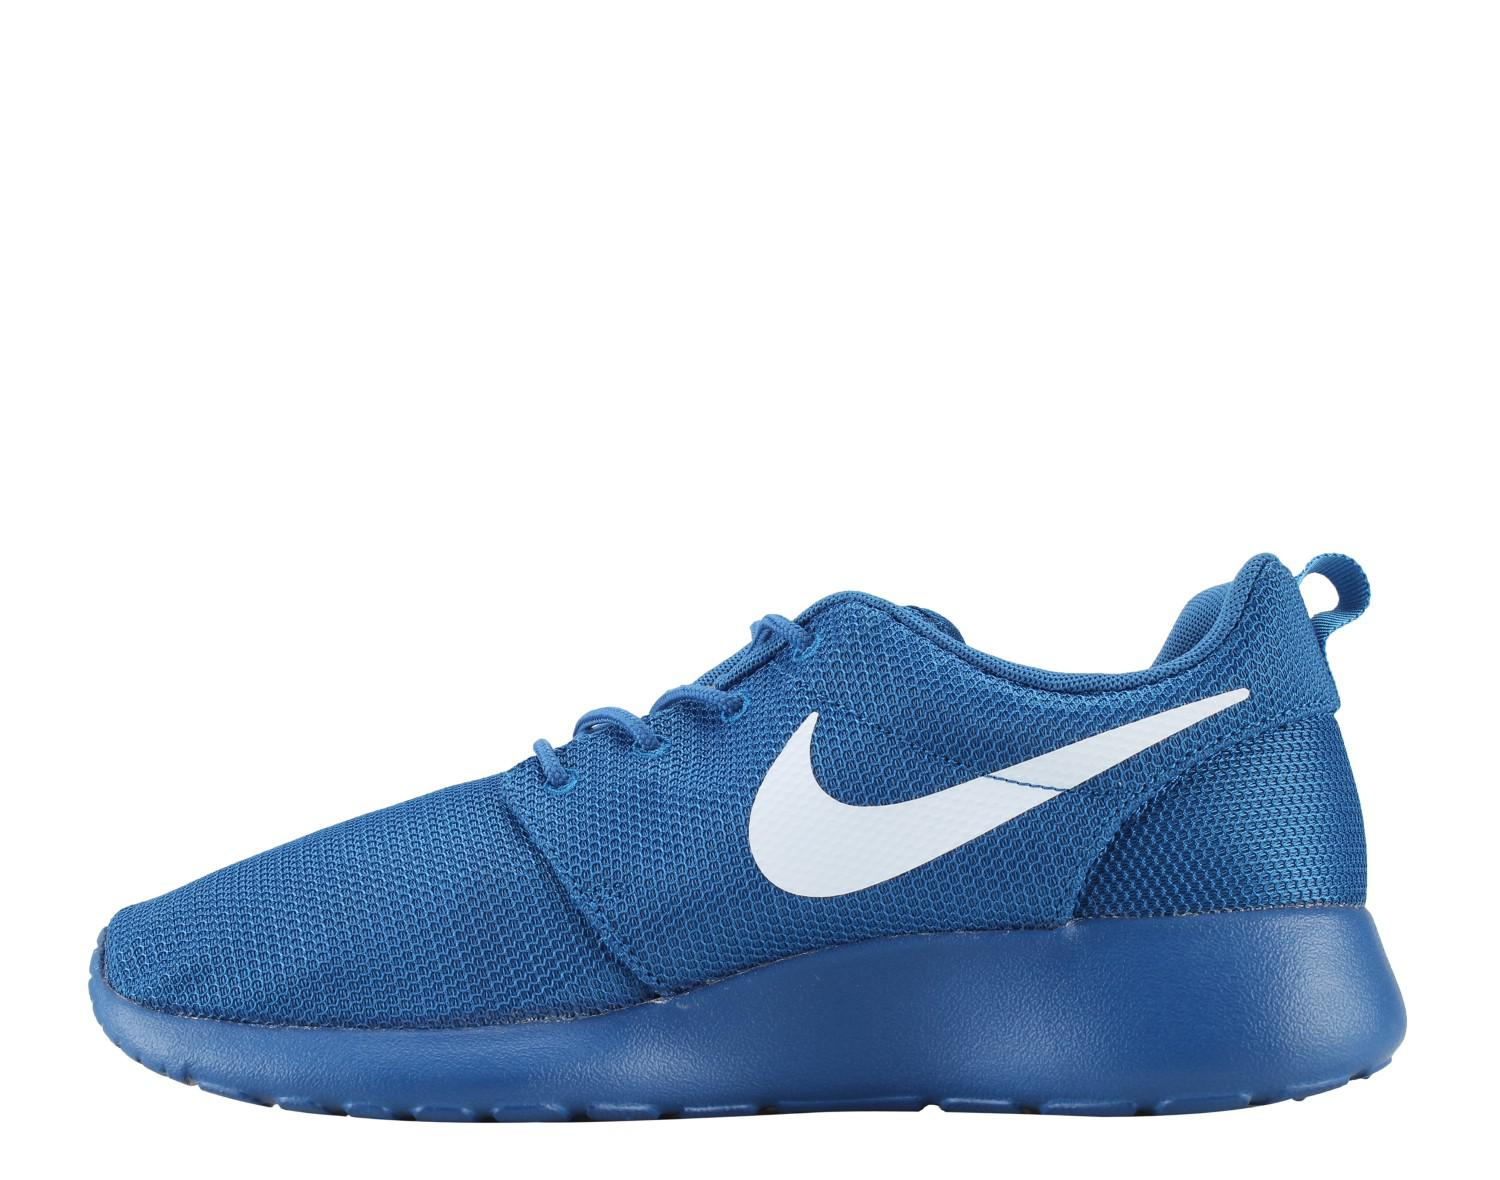 premium selection e671c 9eea8 where to buy nike roshe supreme rushi 1b1c3 e8a99